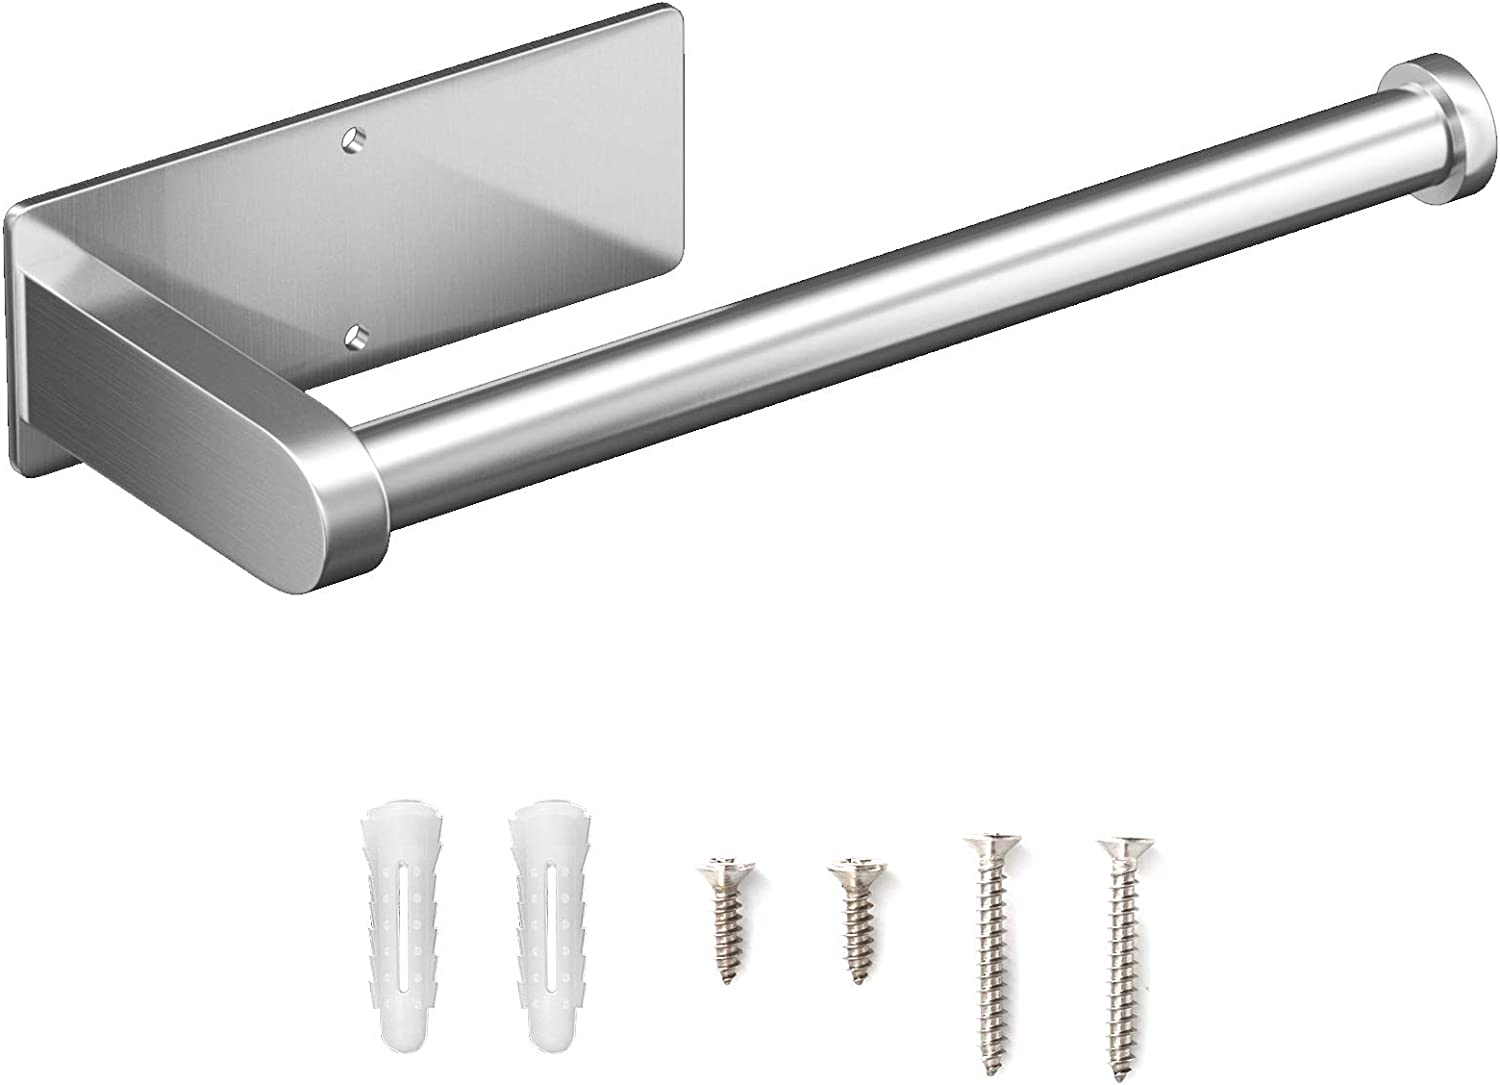 Paper Reservation Max 44% OFF Towel Holder Under Cabinet Adhesive Kitchen Self Ra